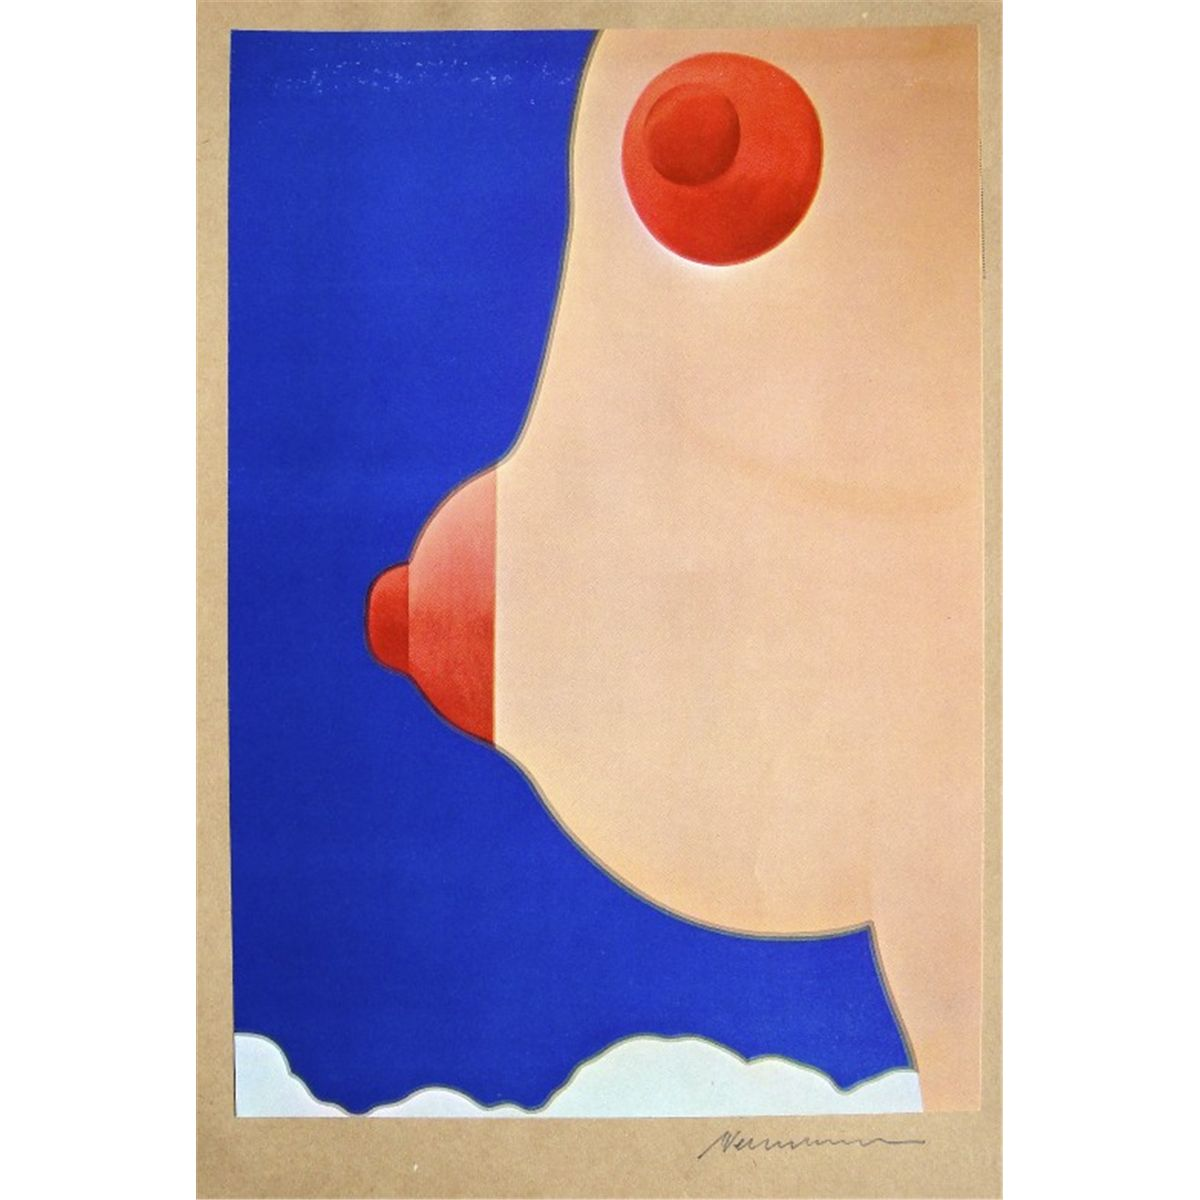 Tom Wesselmann's Pop Art Nudes: 12022090_1.jpg